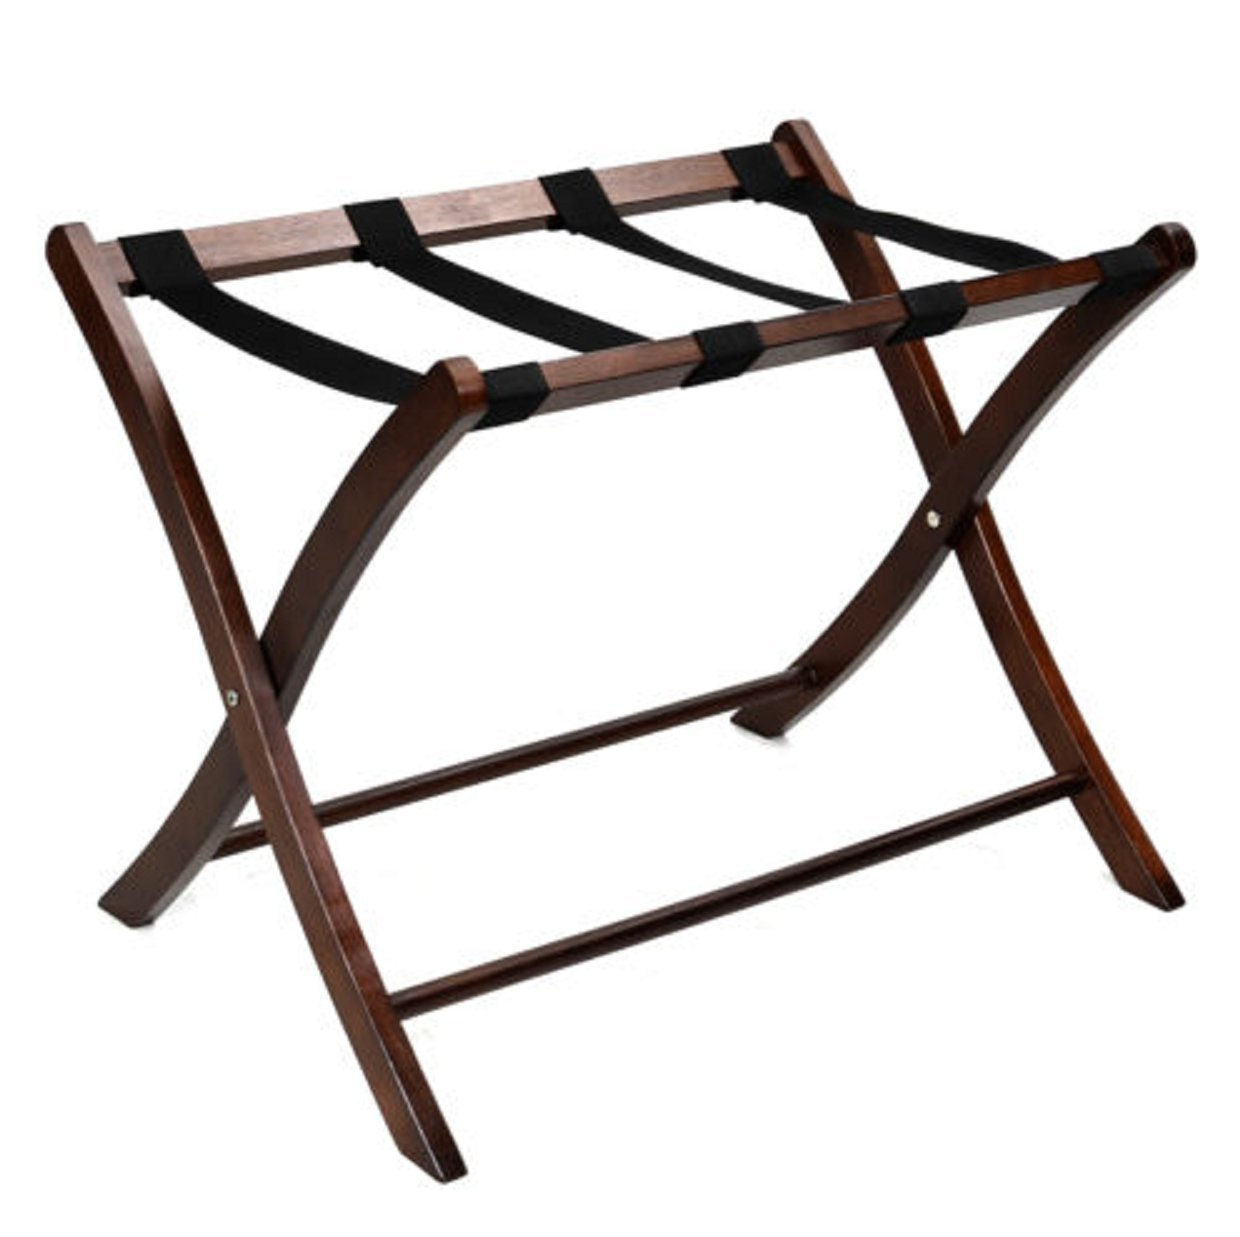 luggage racks for suitcases suitcase stand the bedroom holder folding guest Folding Winsome Wood Luggage Rack Classic Hotel Suitcase Stand Passenger New